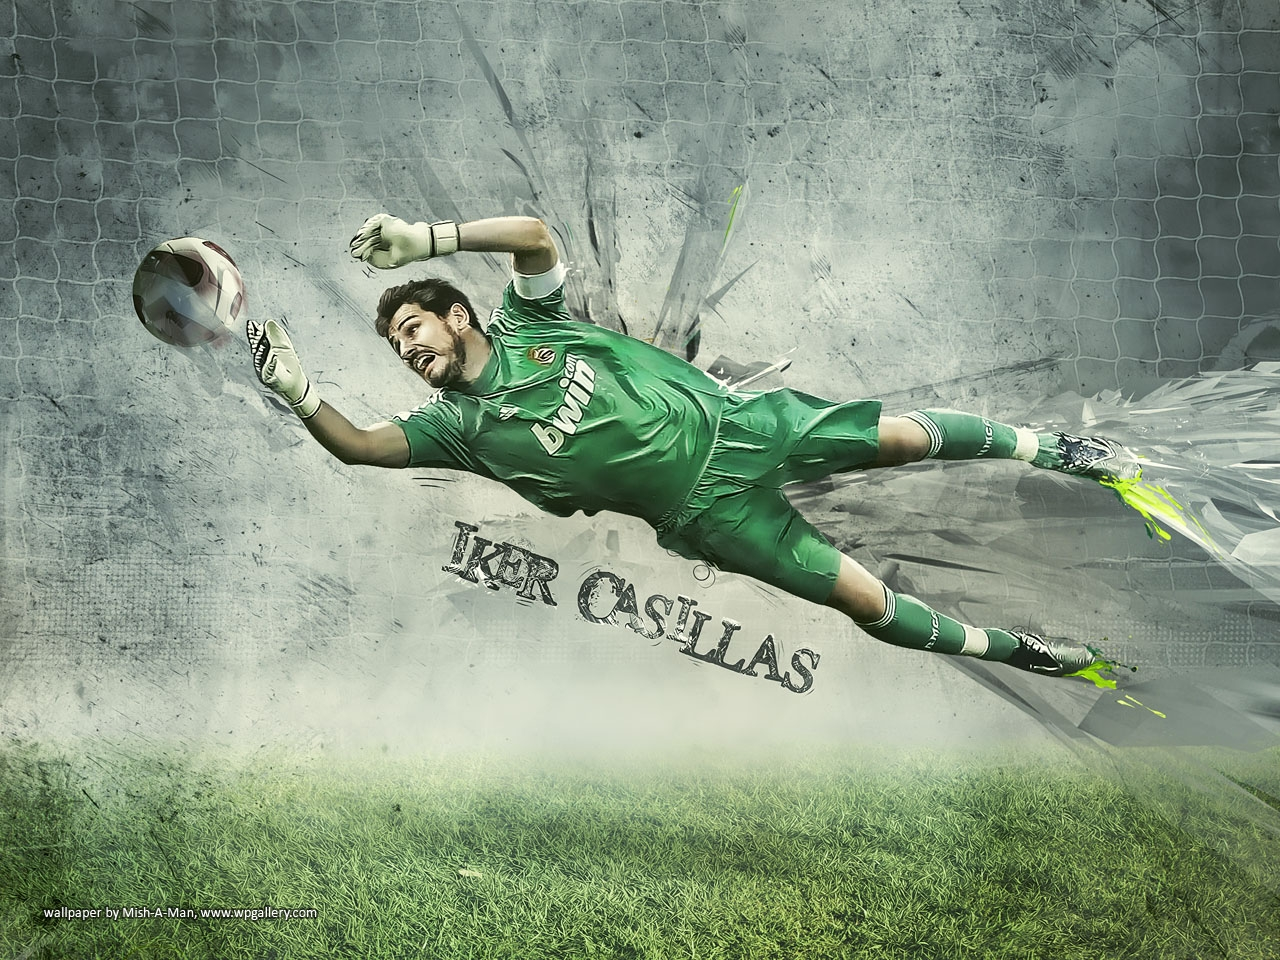 Futbol Wallpapers De Futbol Wallpapers Porteros Futbol Hd Wallpaper